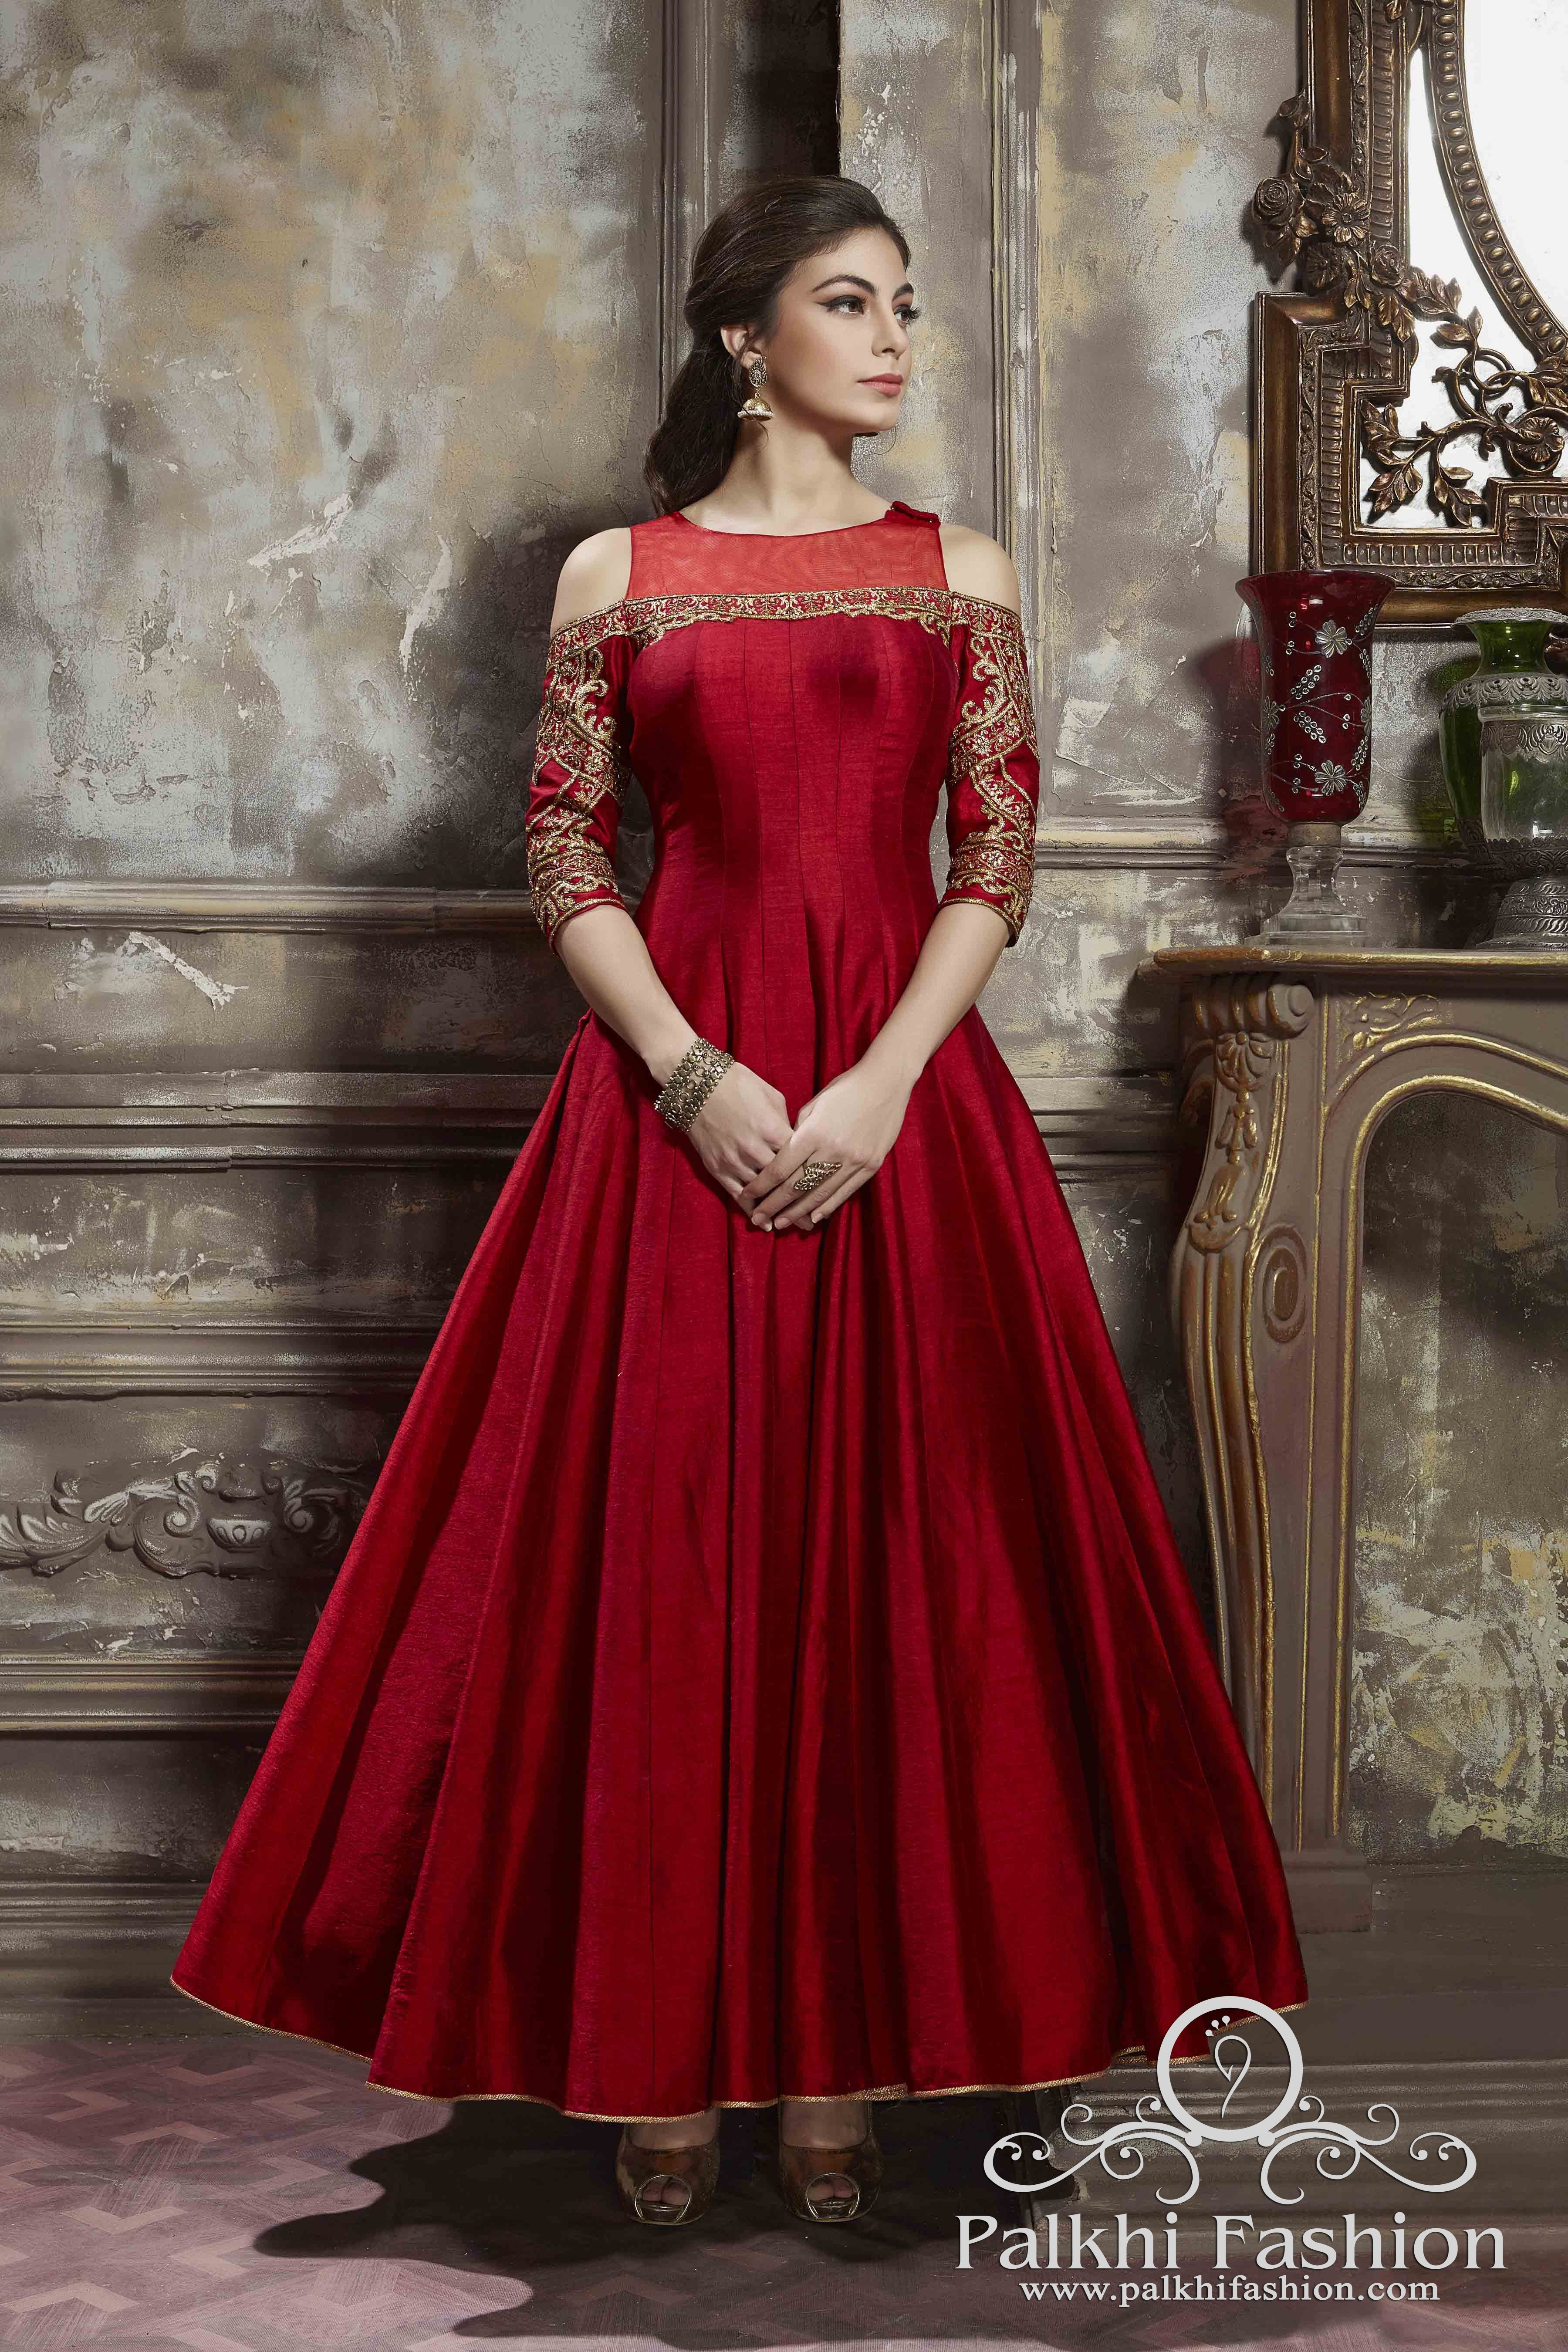 220d4596c2d4bb PalkhiFashion Designer Full Flair Red Silk Outfit With Elegant Work and Cold  Shoulder Look.